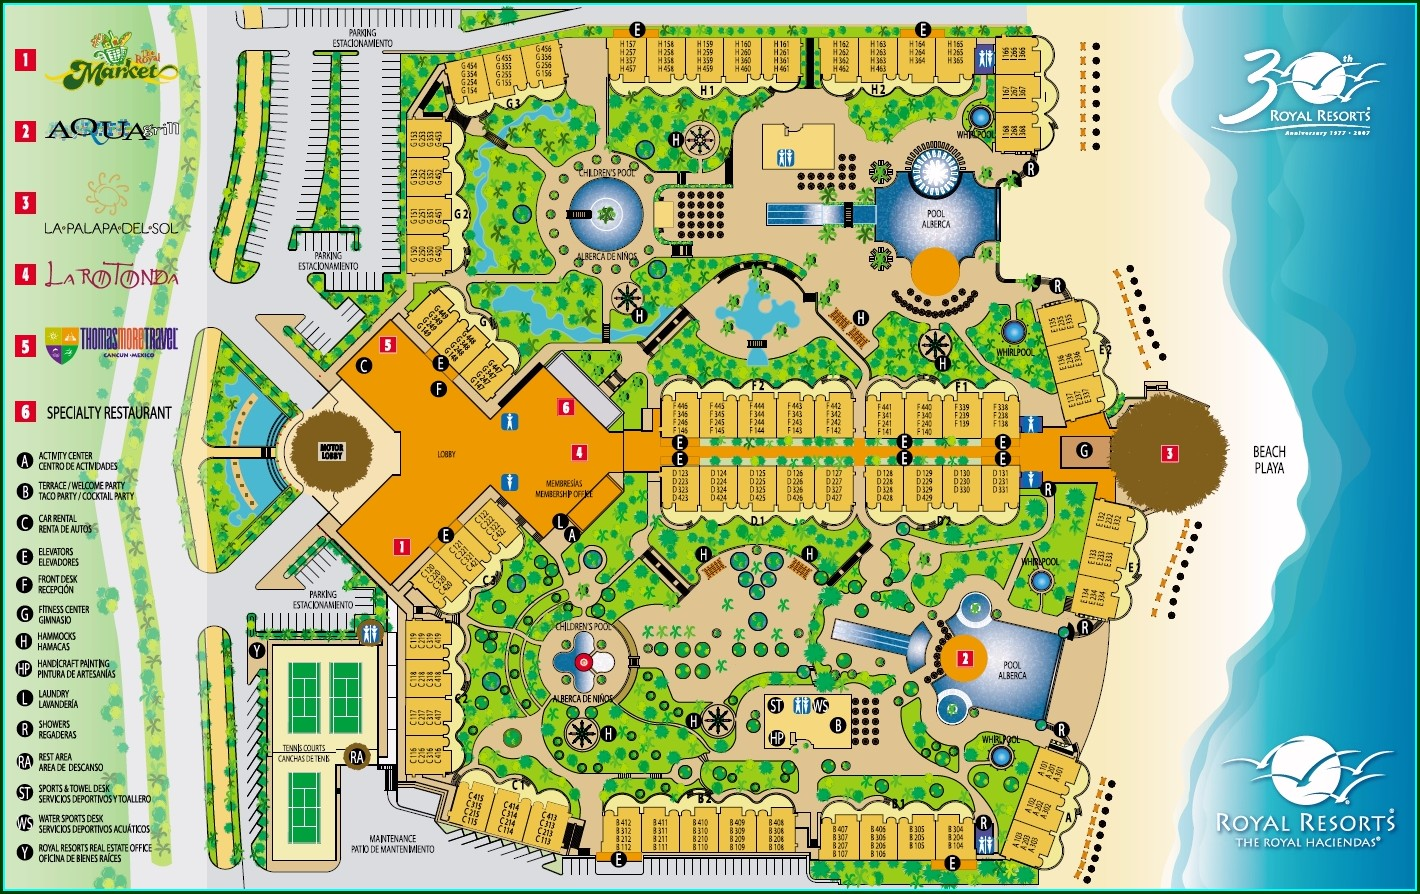 Royal Haciendas Room Map